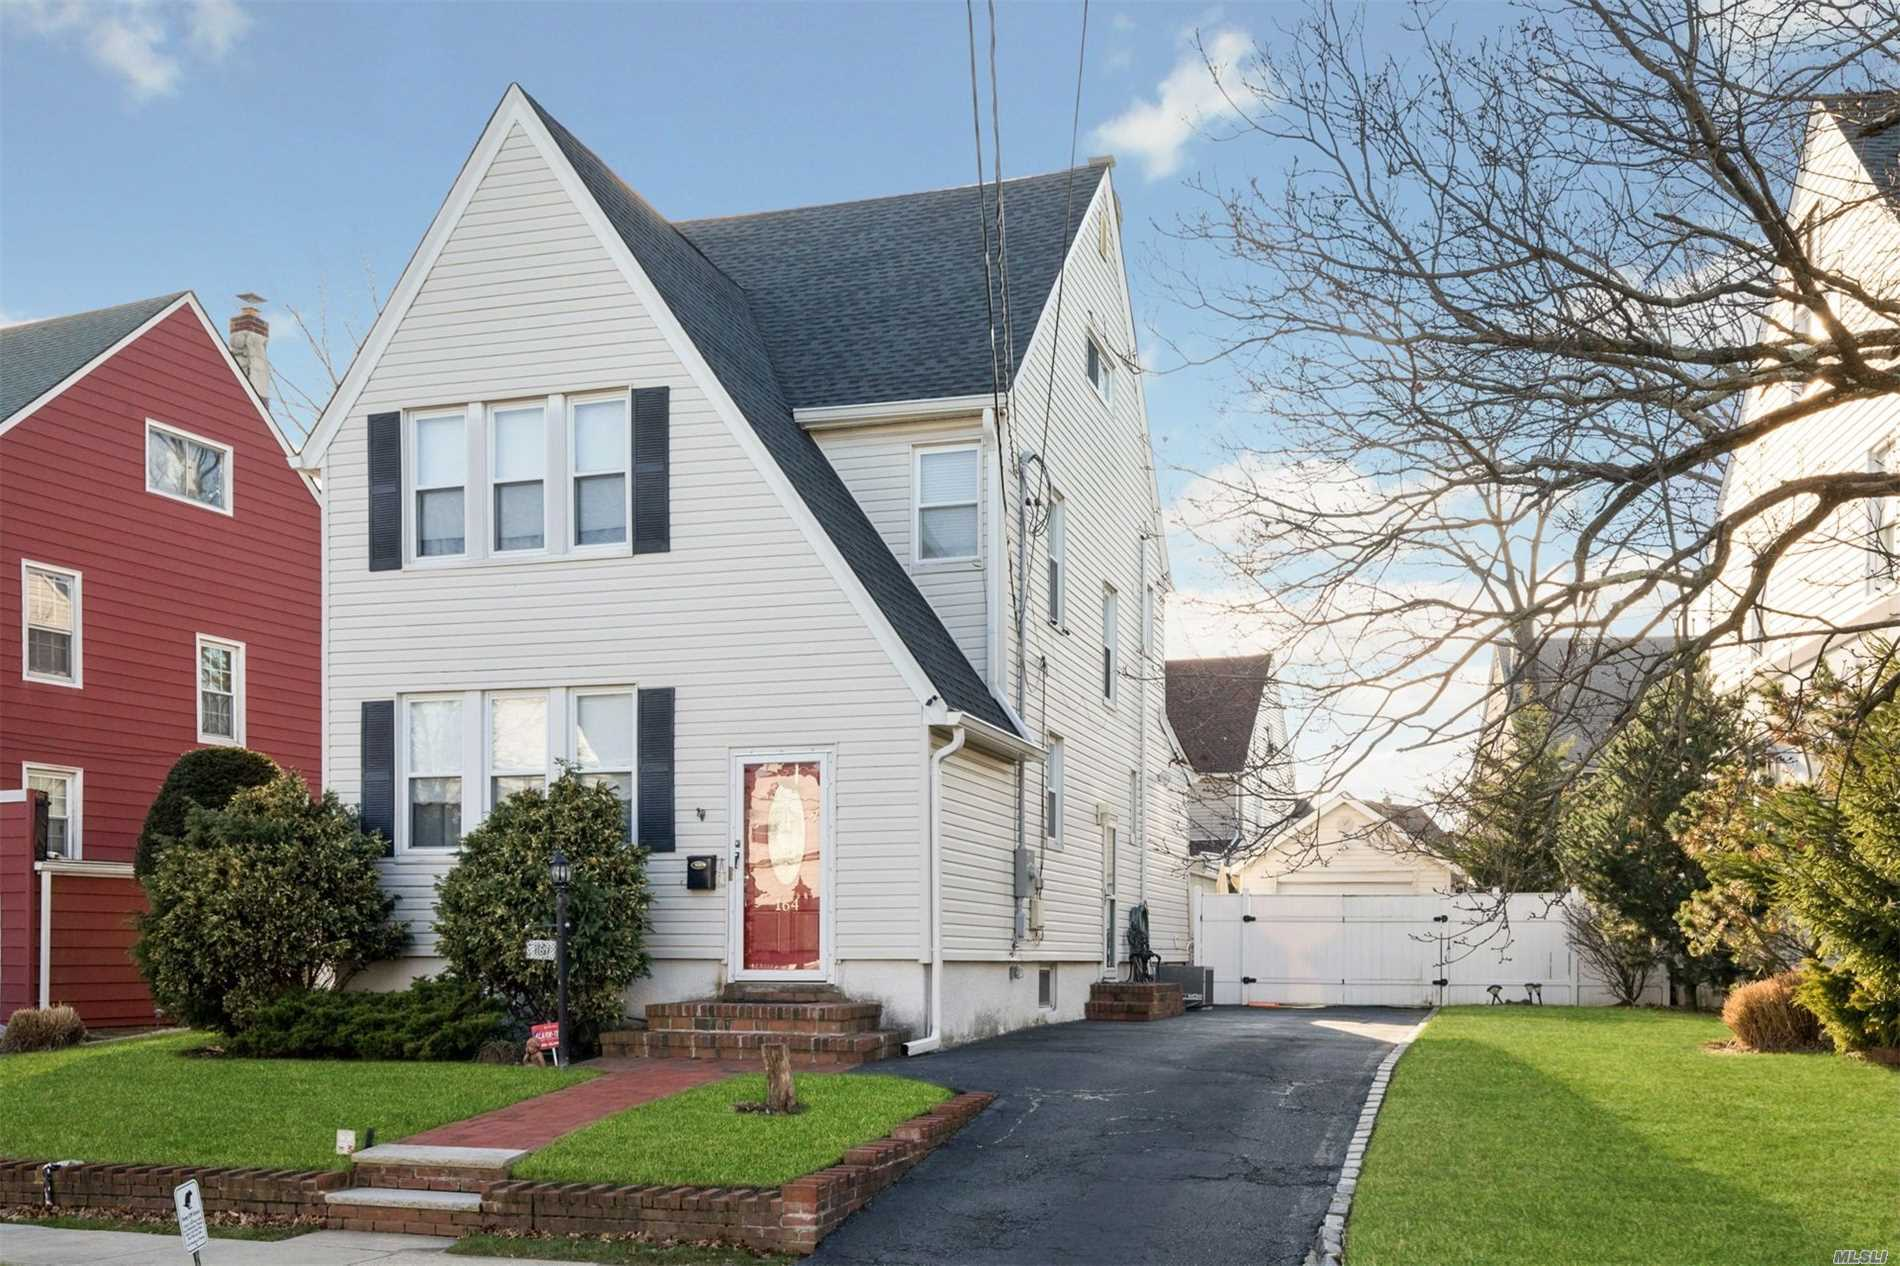 4 Bedroom 1.5Bath Colonial With Full Finished Basement, Eat-In Kitchen Is 2 Years Old, Stainless Steel Appliances, Granite, New Roof On House & Garage, Sliding Door To Deck, Roll Up Awning, 4 Ceiling Fans, Near Transportation & Shopping.